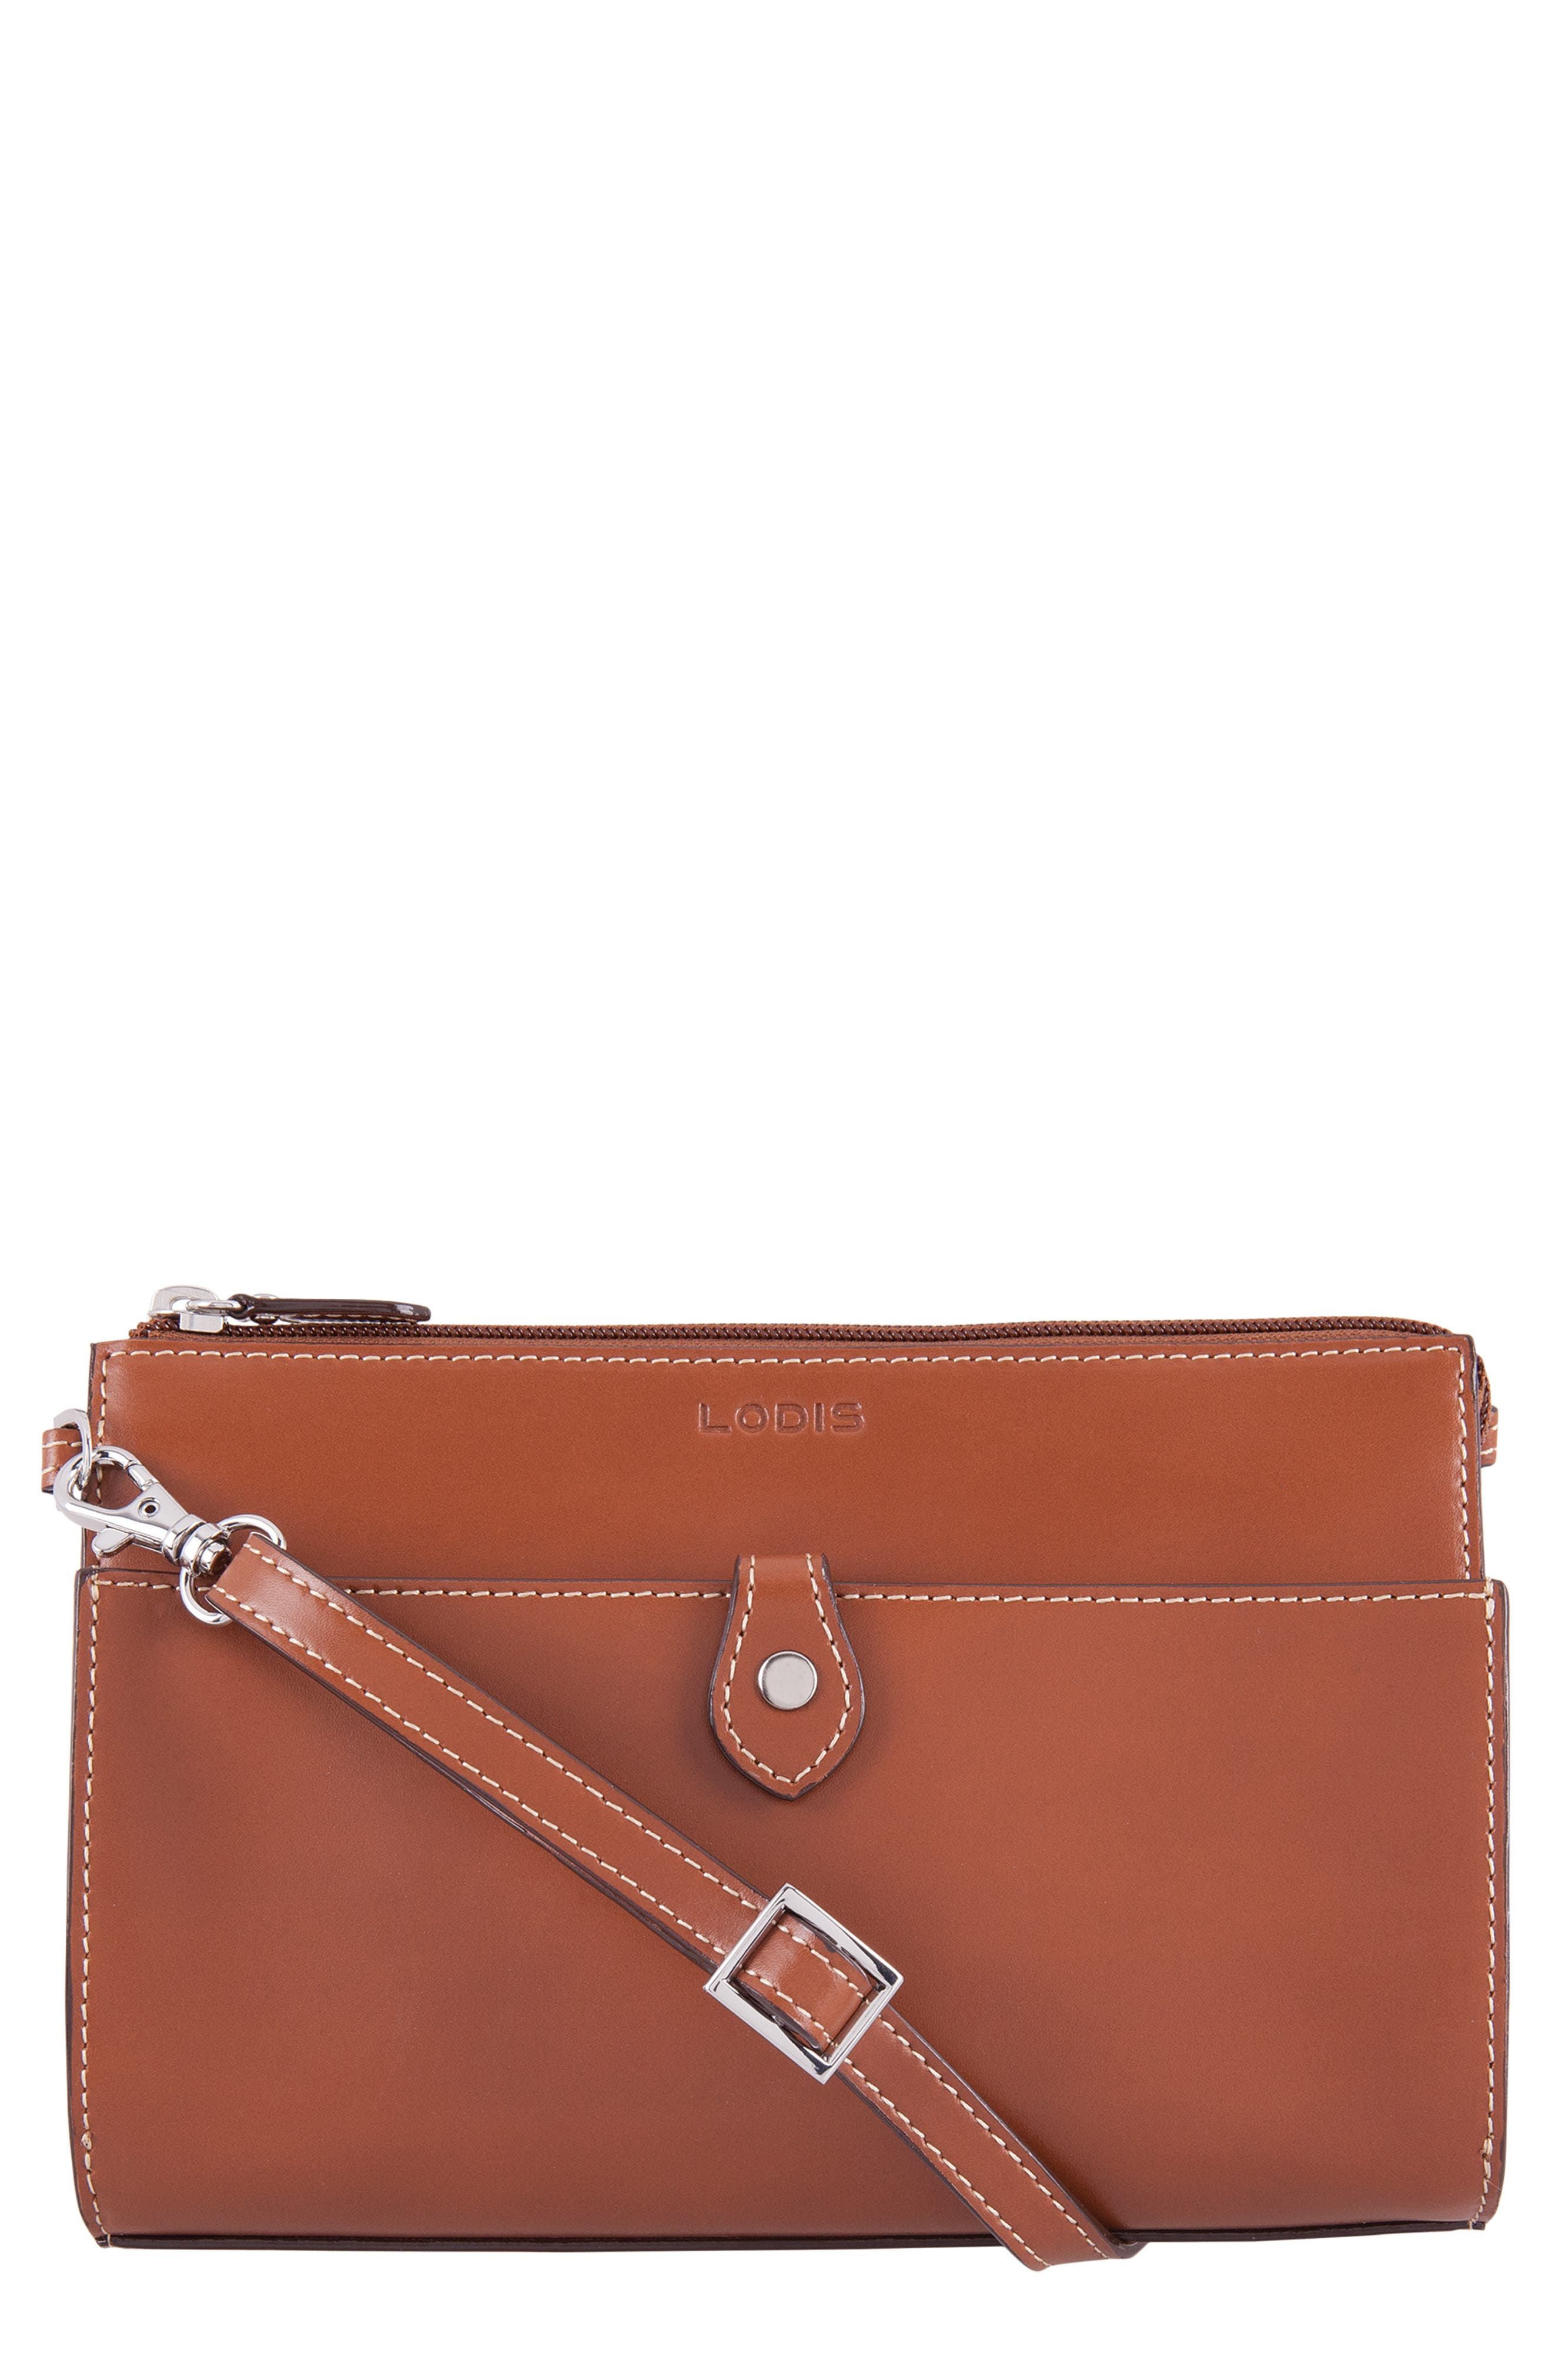 Audrey Under Lock & Key Vicky Convertible Leather Crossbody Bag,                             Main thumbnail 1, color,                             SEQUOIA/ PAPAYA